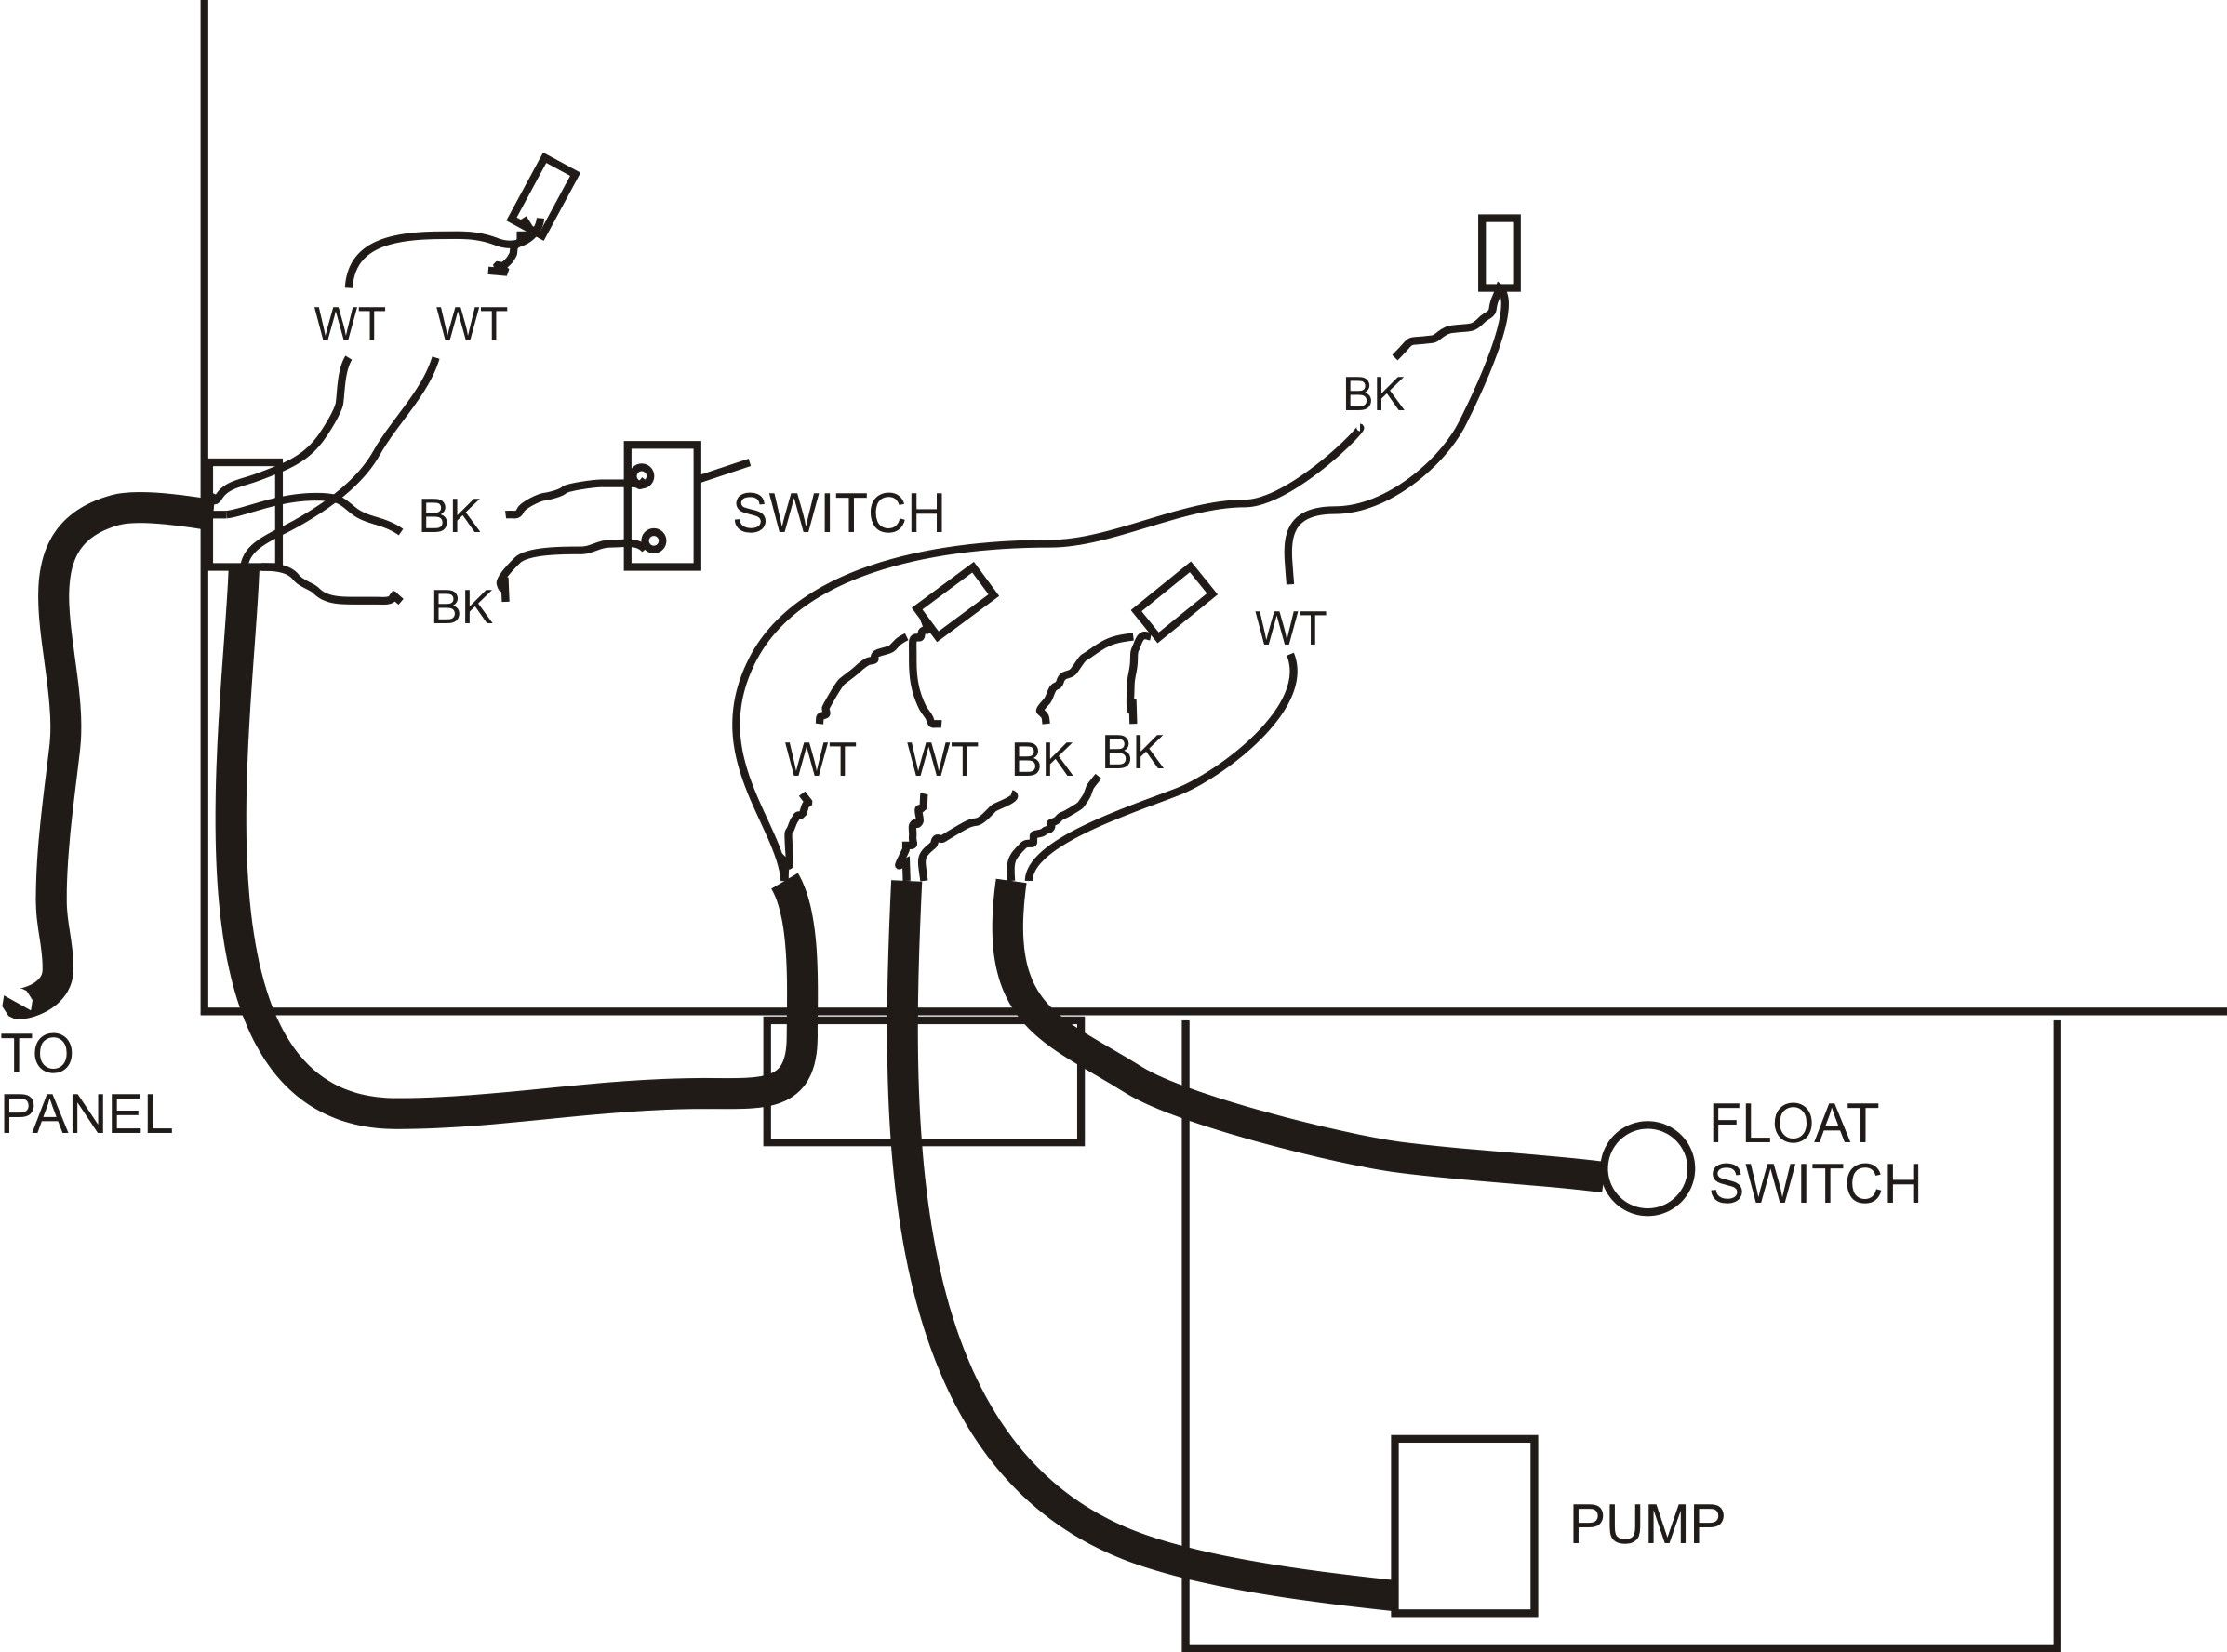 medium resolution of sewage pump wiring diagram wiring diagram name wiring diagram likewise water tank float switch on water tank float